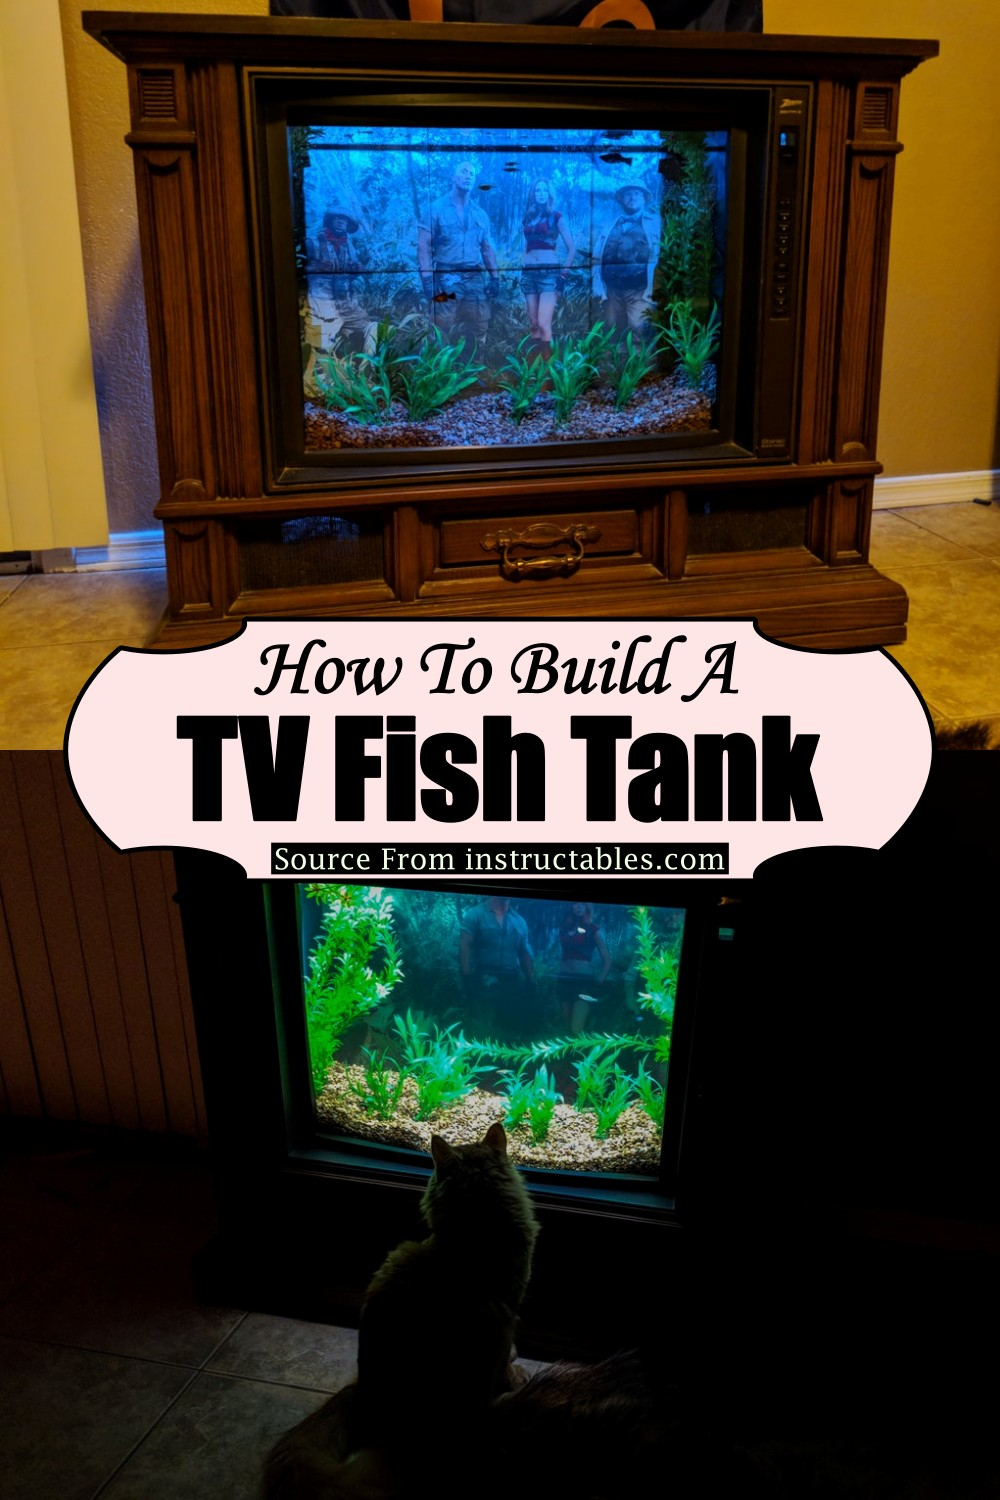 How To Build A TV Fish Tank